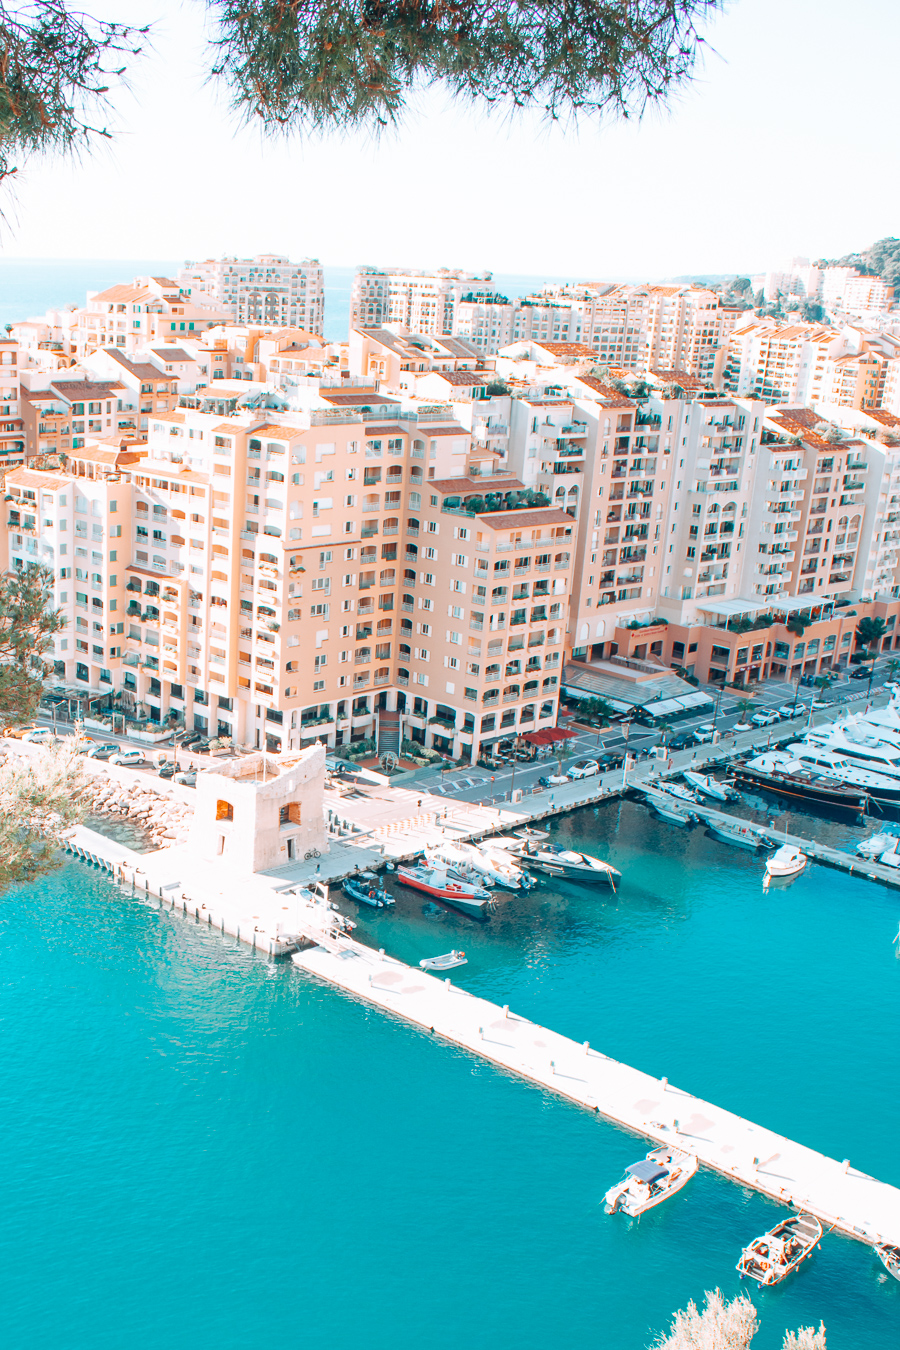 View of water and houses in Monaco